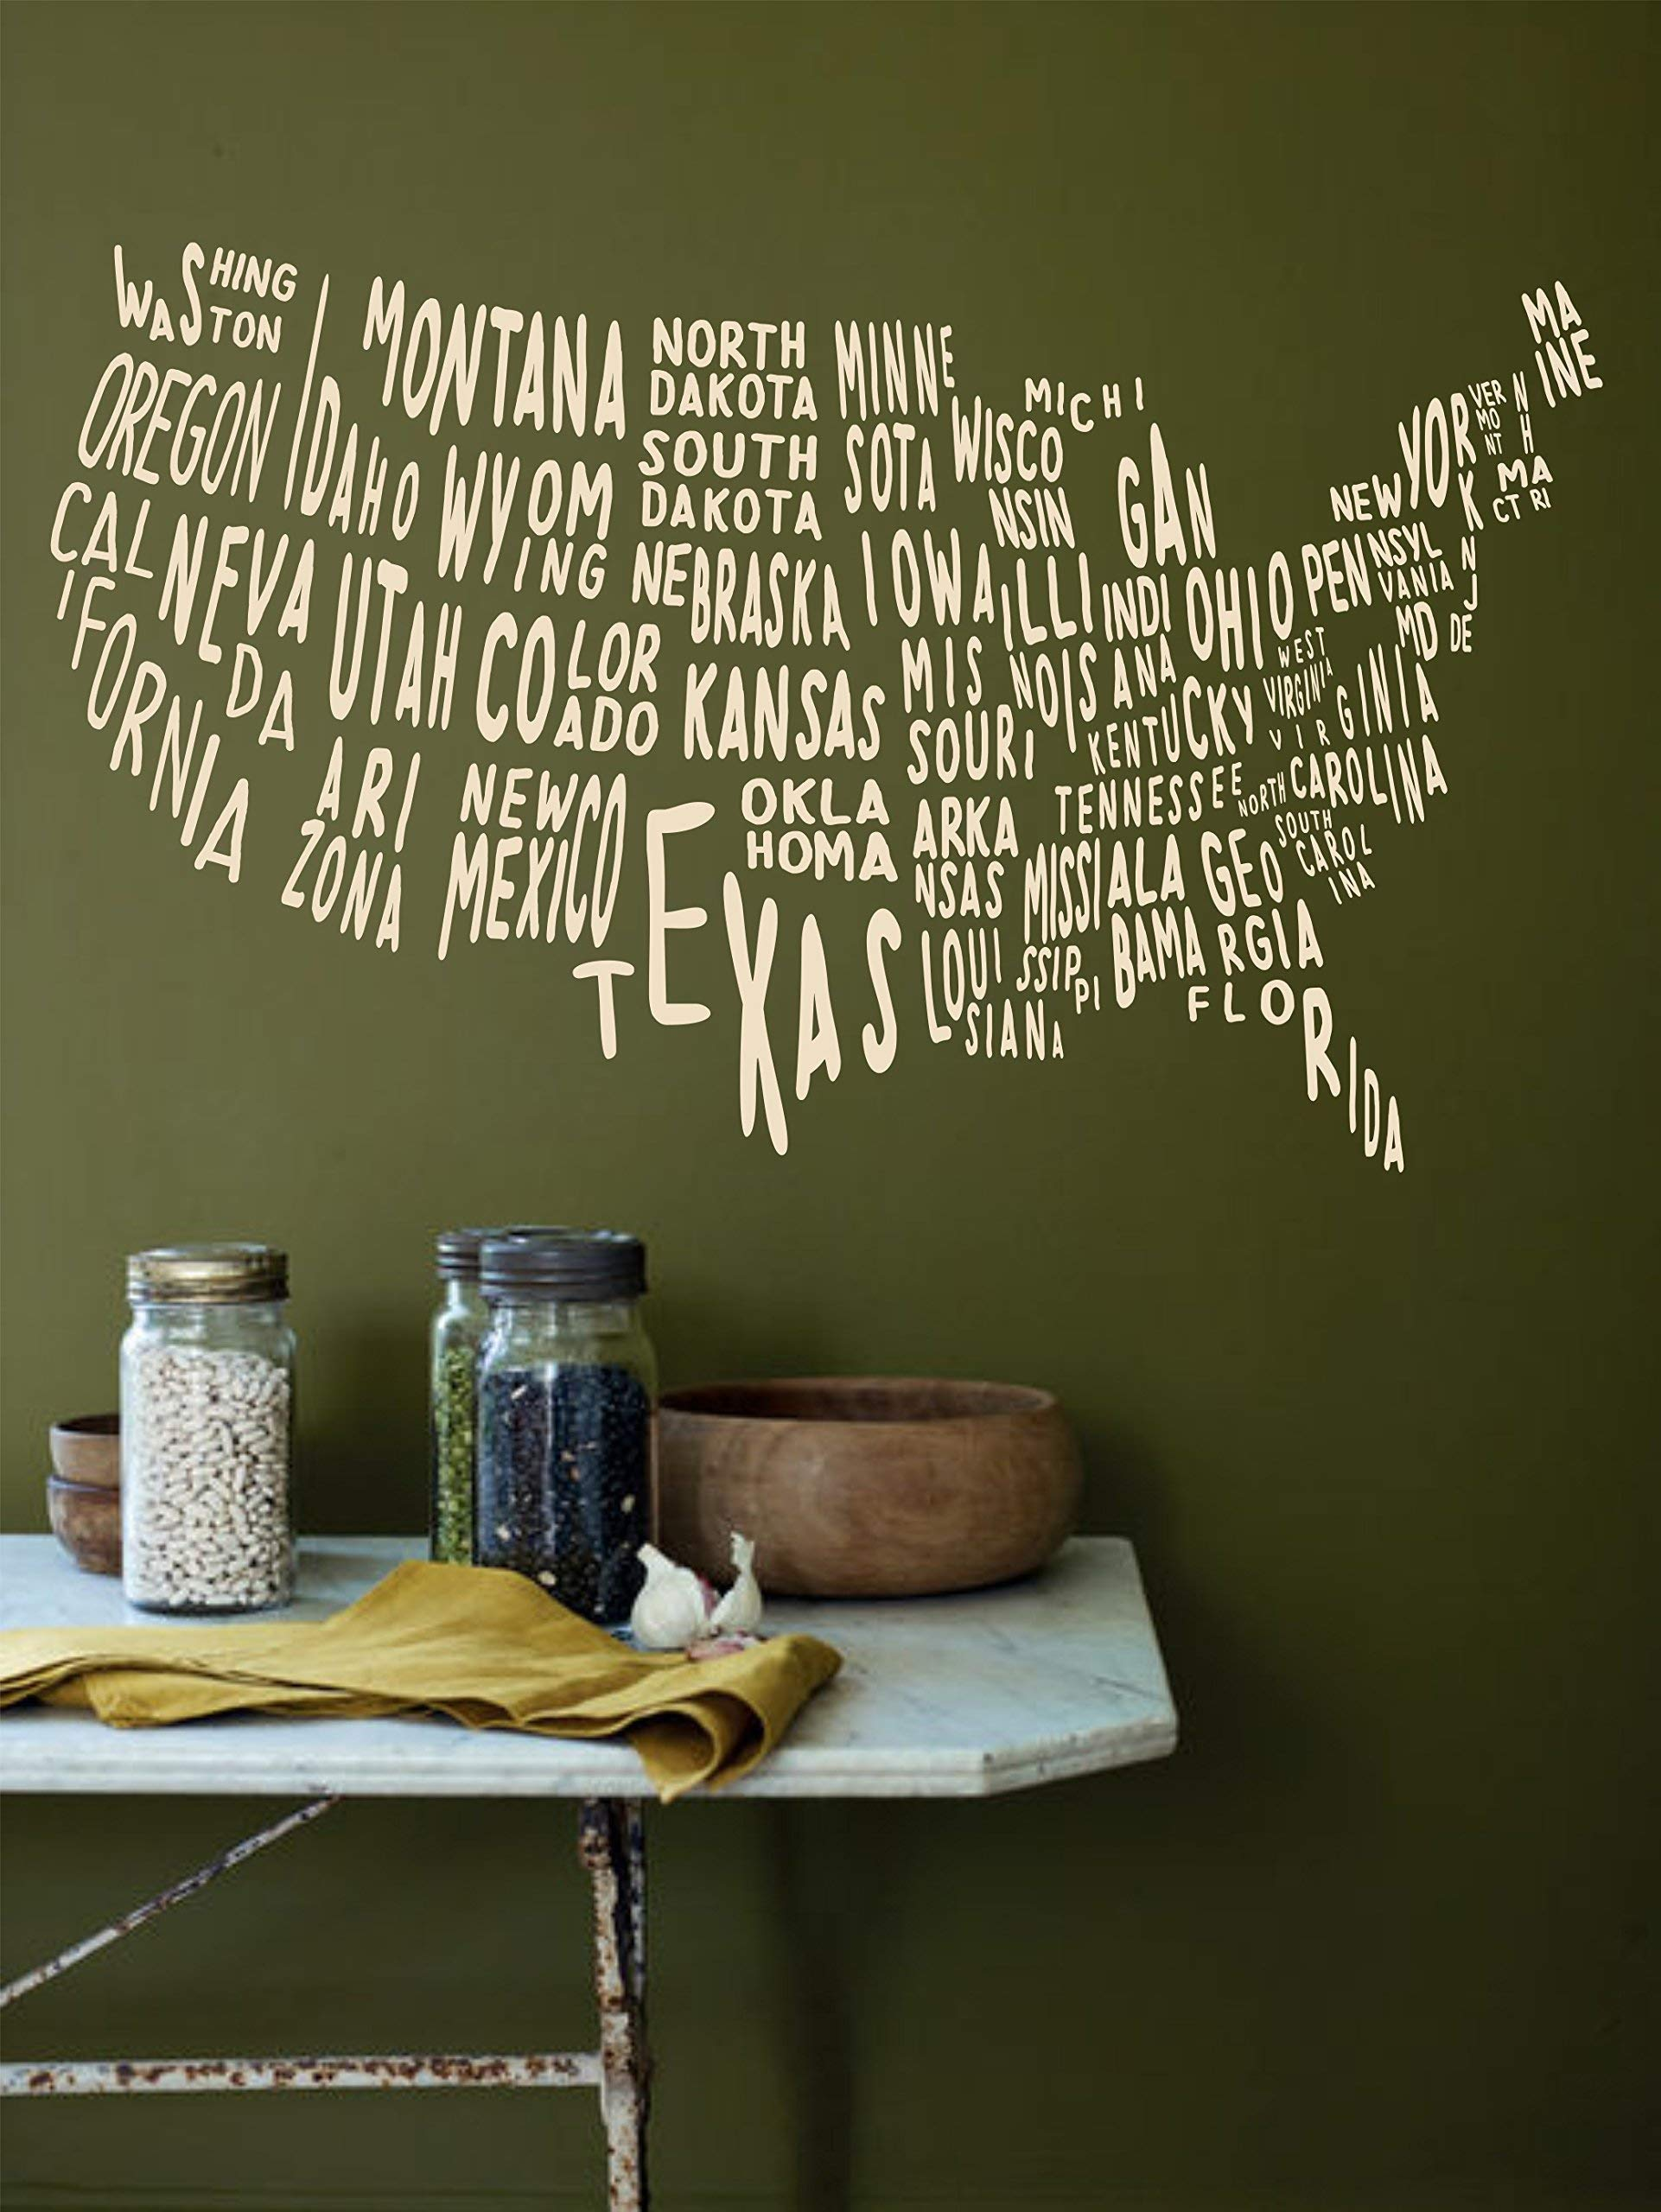 USA Map Wall Decal with States for office, classroom, living room, bedroom decoration | United States Map Removable Vinyl Sticker